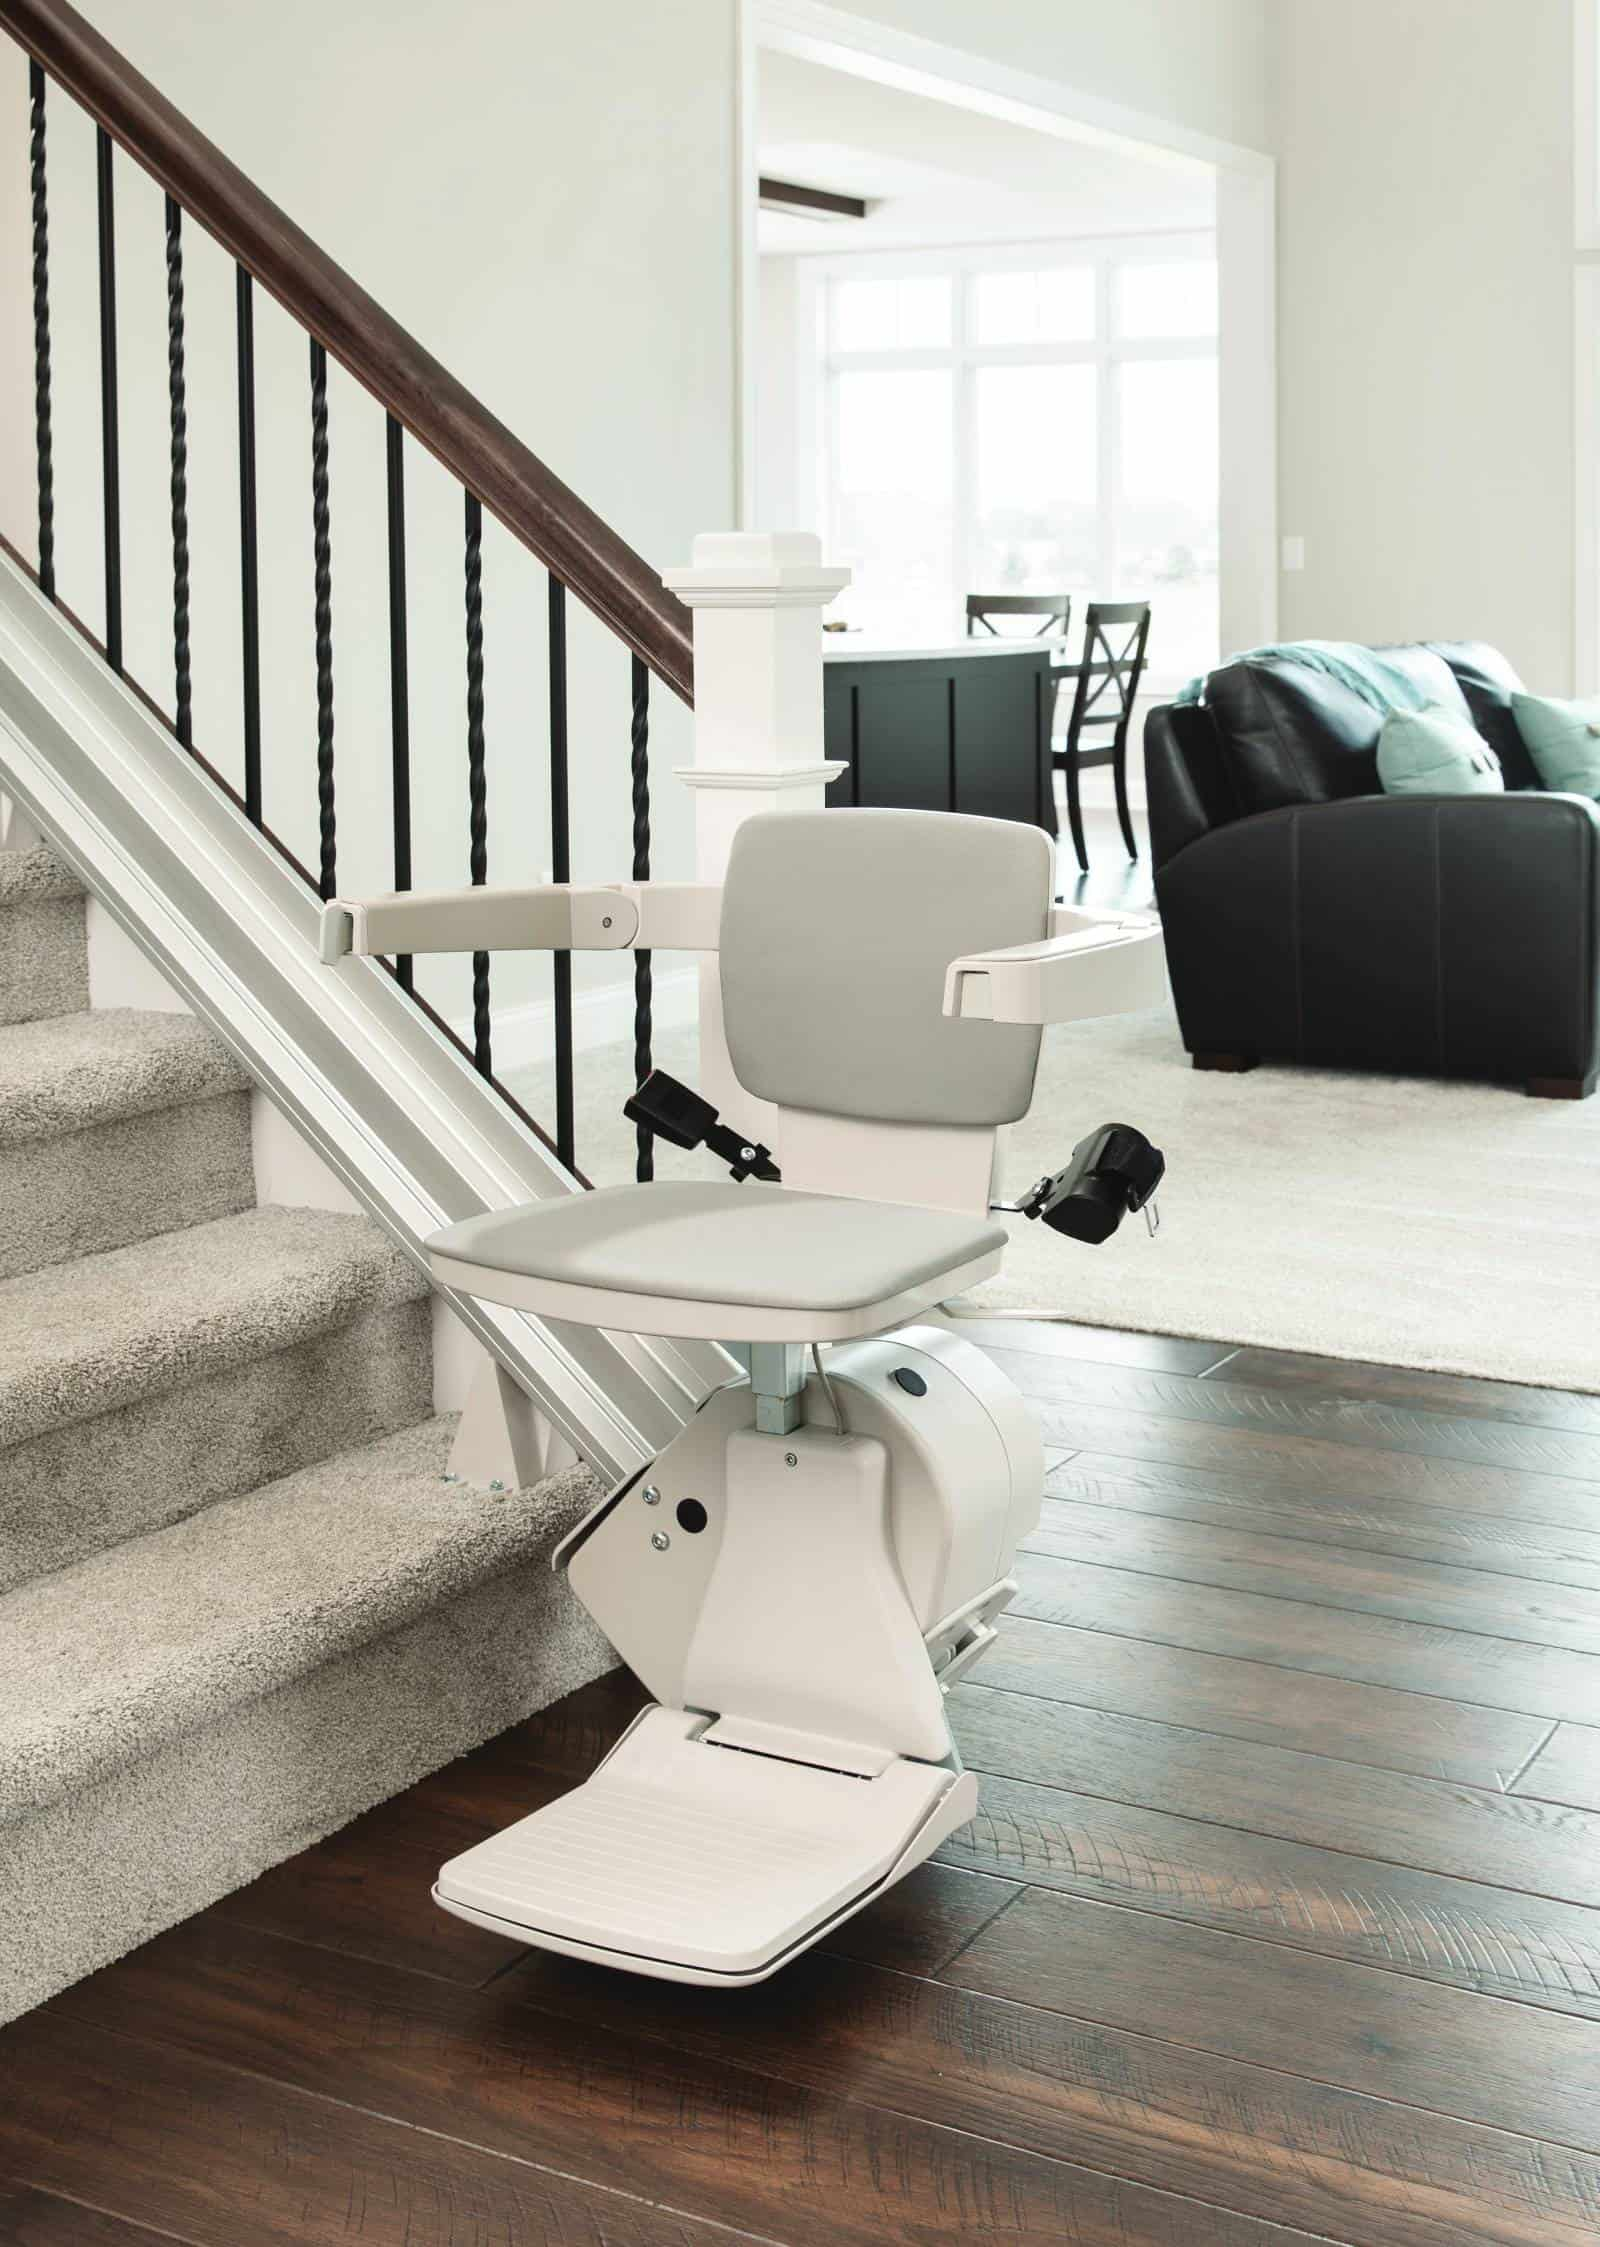 From straight to curved and spiral to steep, stairlifts are filling the need and making homes more accessible for those with physical limitations or disabilities.